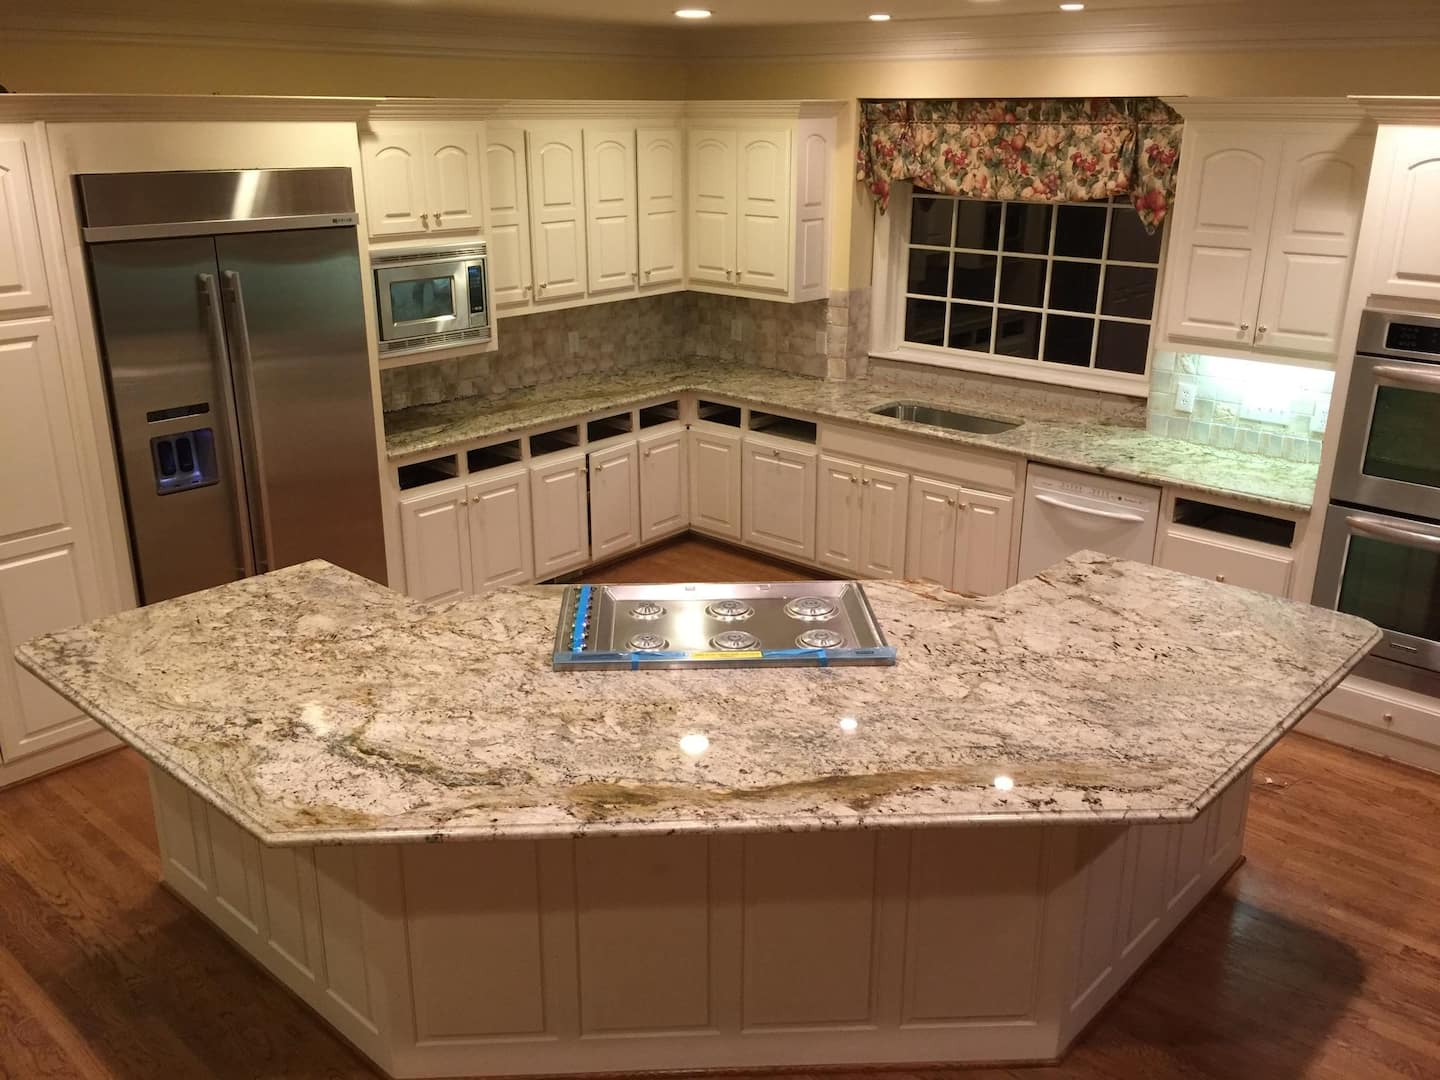 Ugly Granite Countertops What Granite Kitchen Counter Color Do I Choose Angie S List